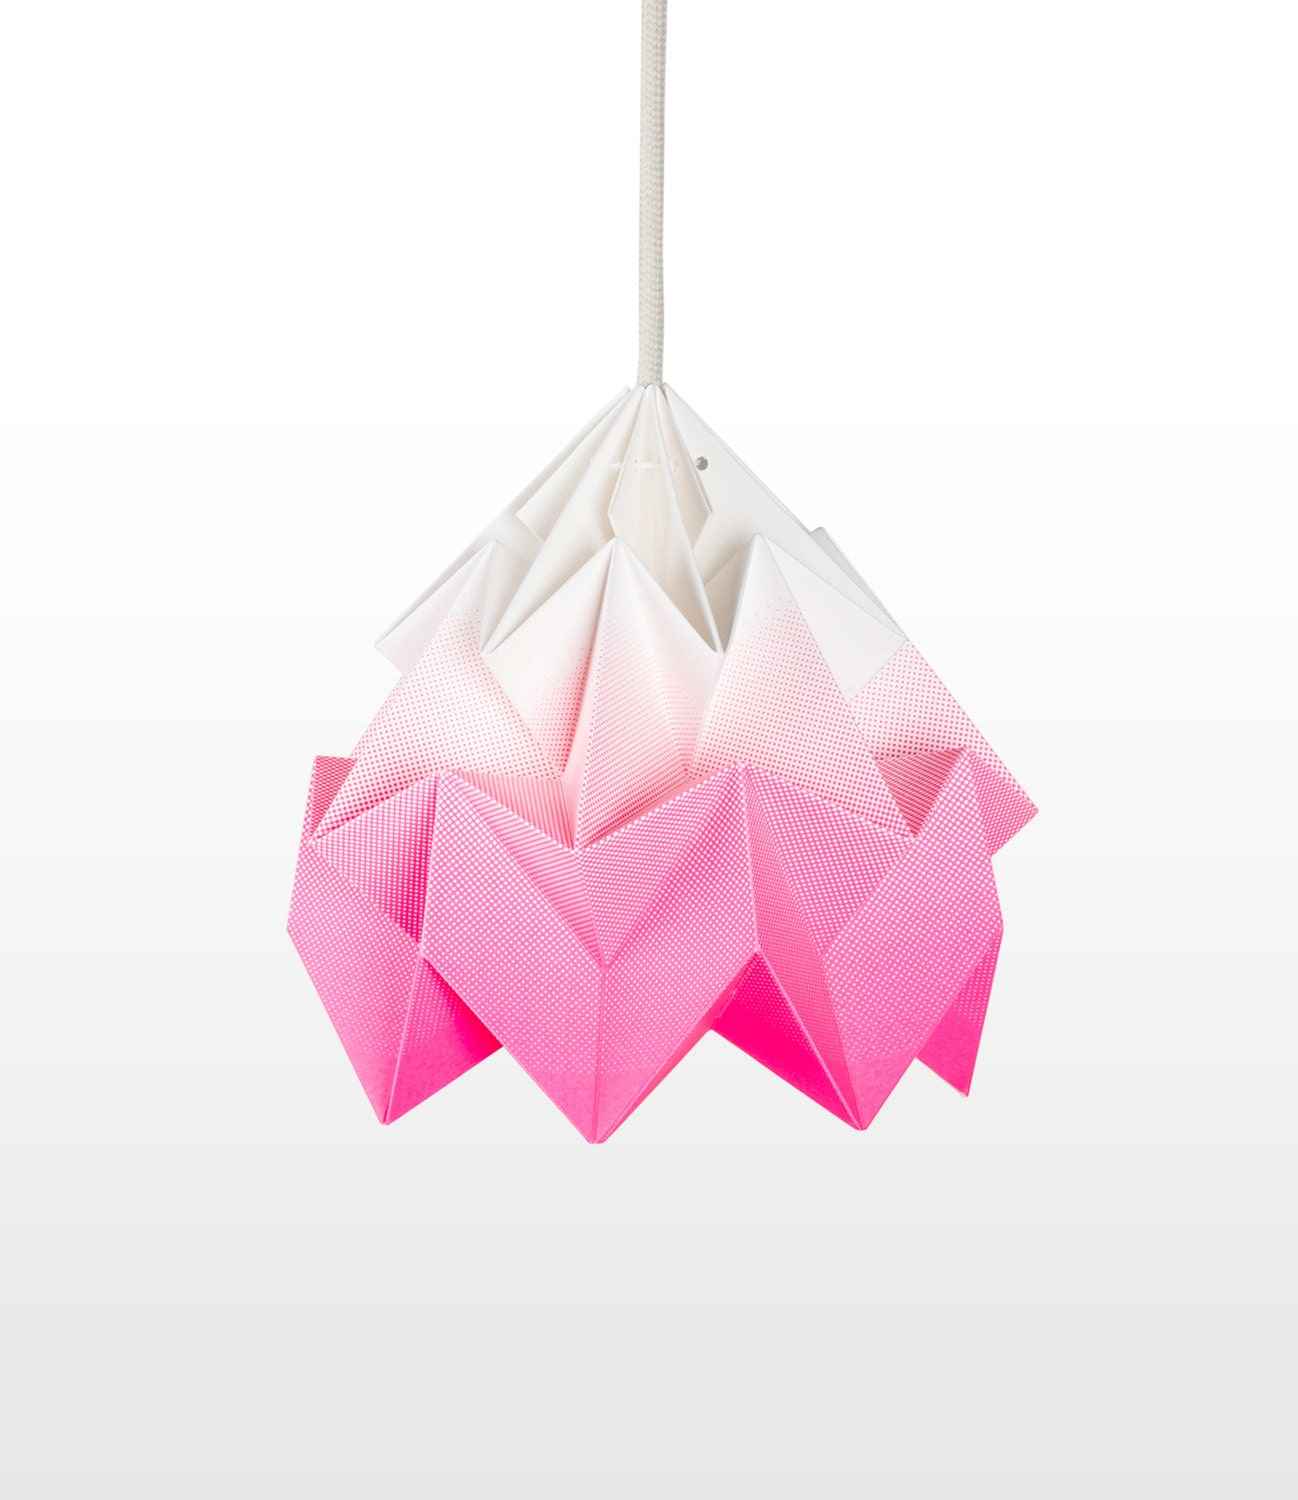 moth origami lampshade gradient pink. Black Bedroom Furniture Sets. Home Design Ideas